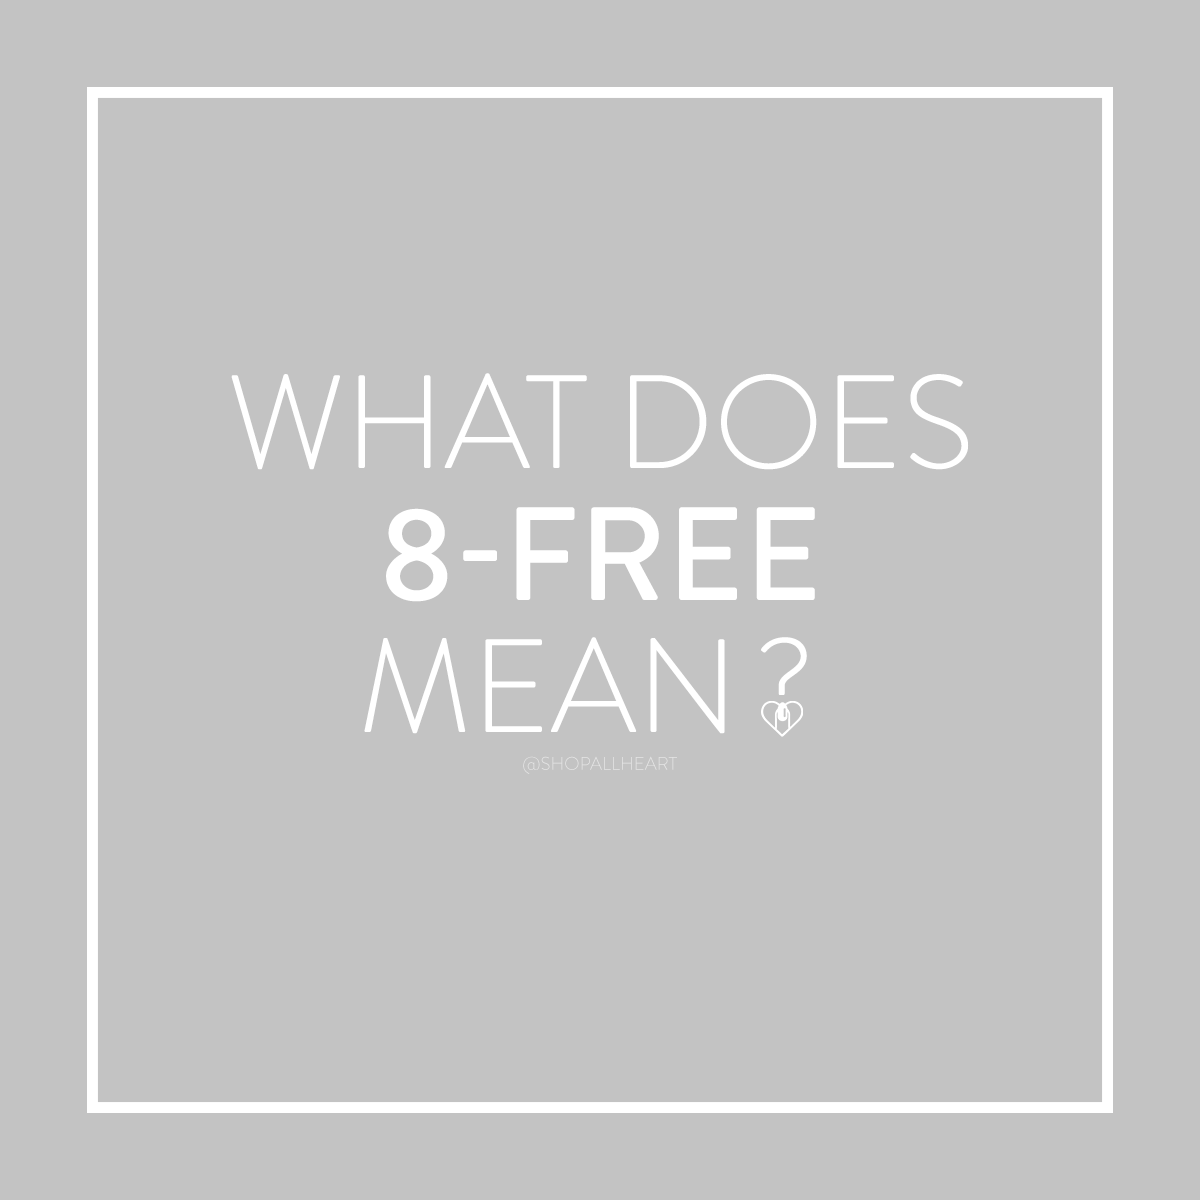 Question: What does 8-free mean? Answer: 8-free means that